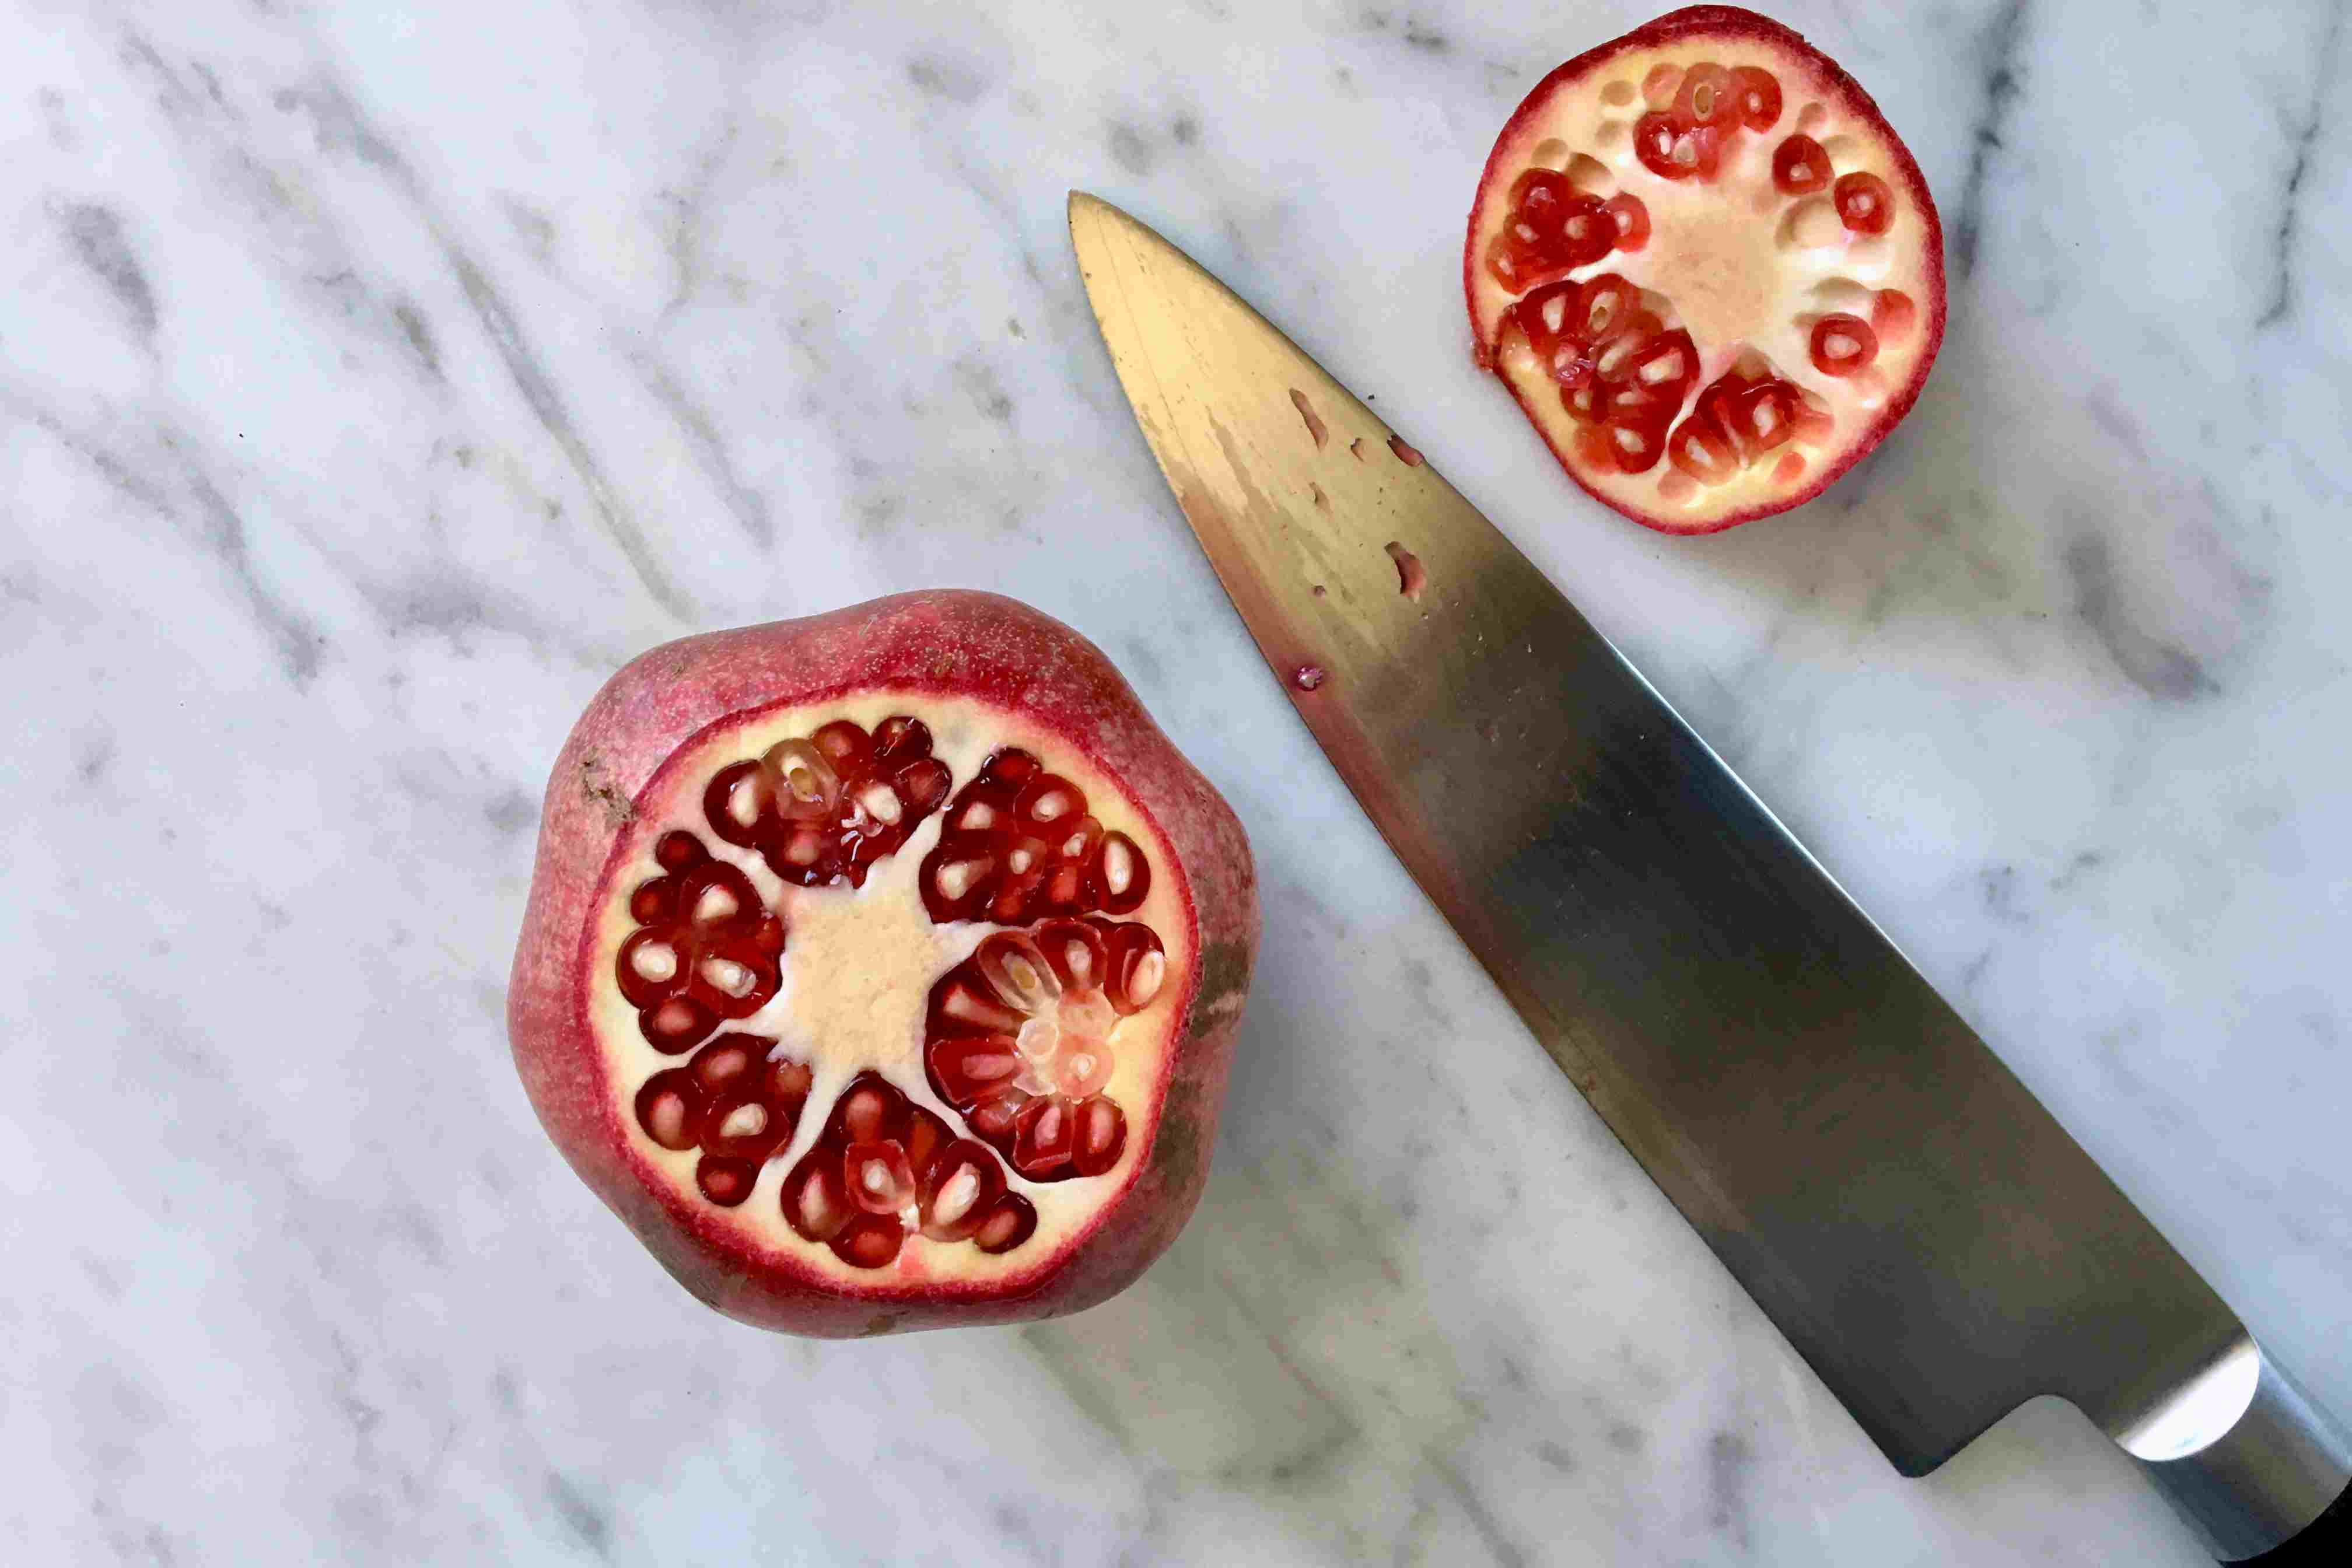 Cut the top off the pomegranate